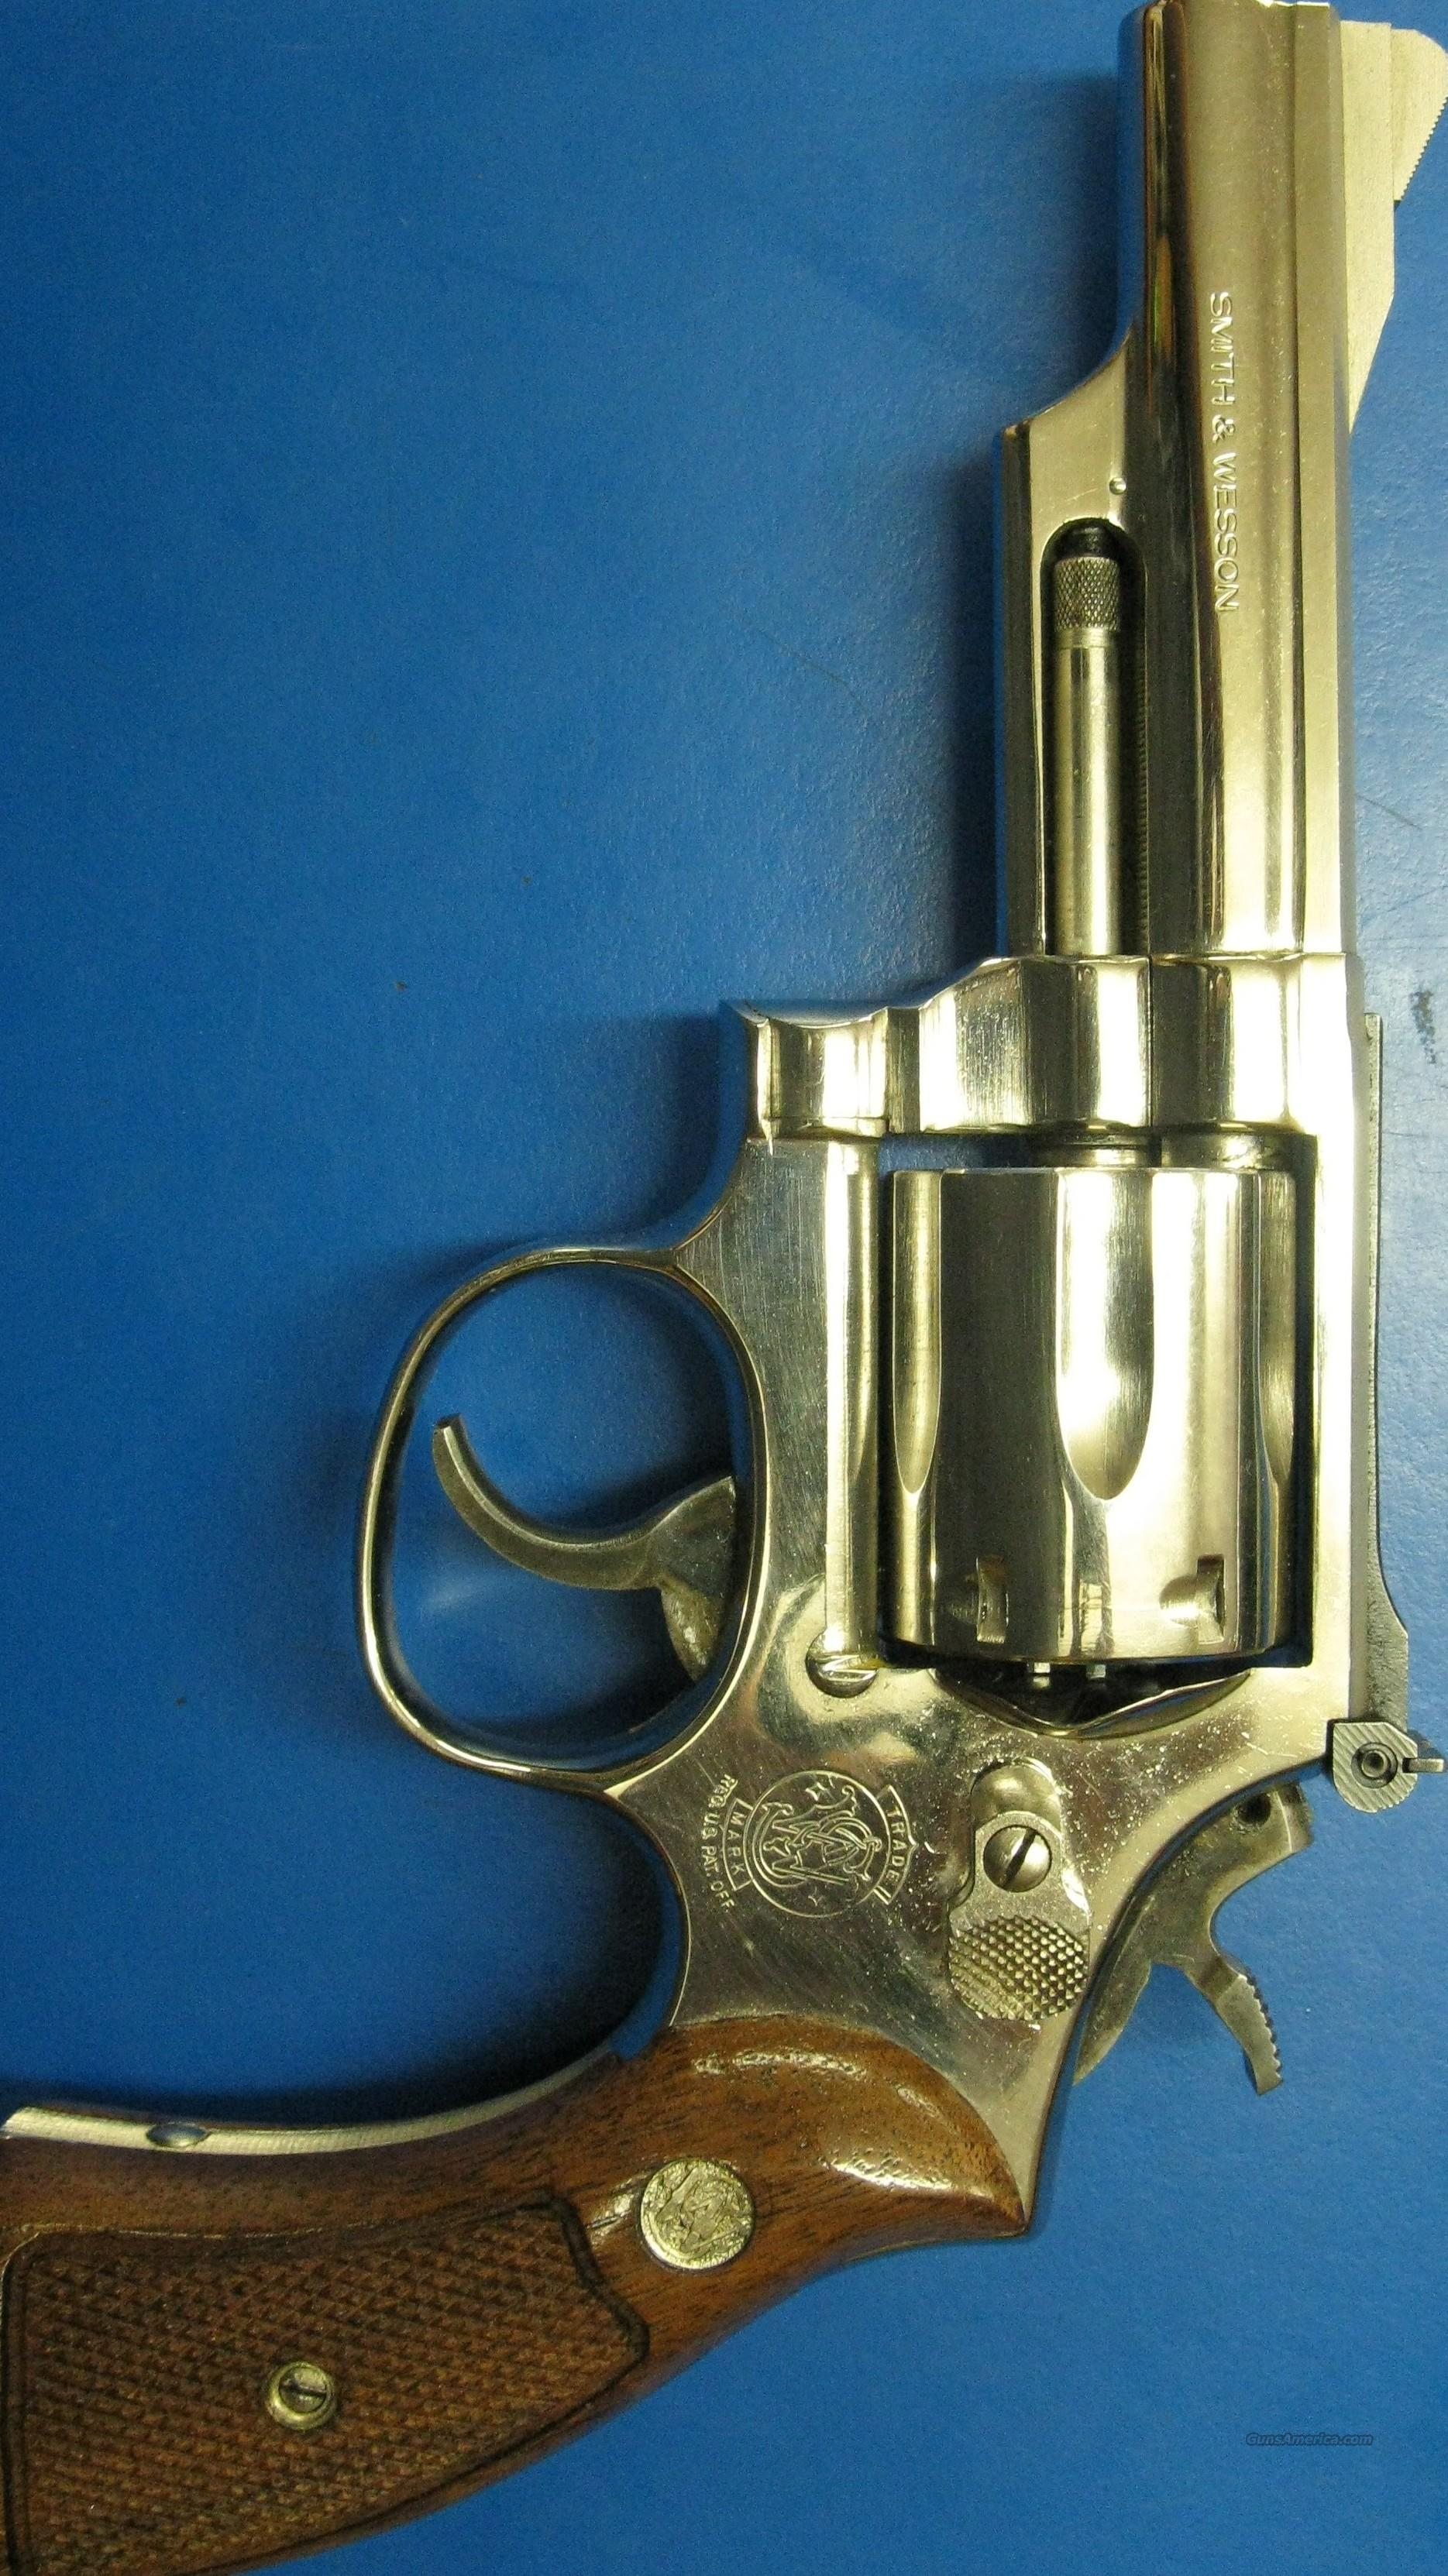 Smith and Wesson model 19-5 nickel 4-inch  357 magnum  Guns > Pistols > Smith & Wesson Revolvers > Full Frame Revolver